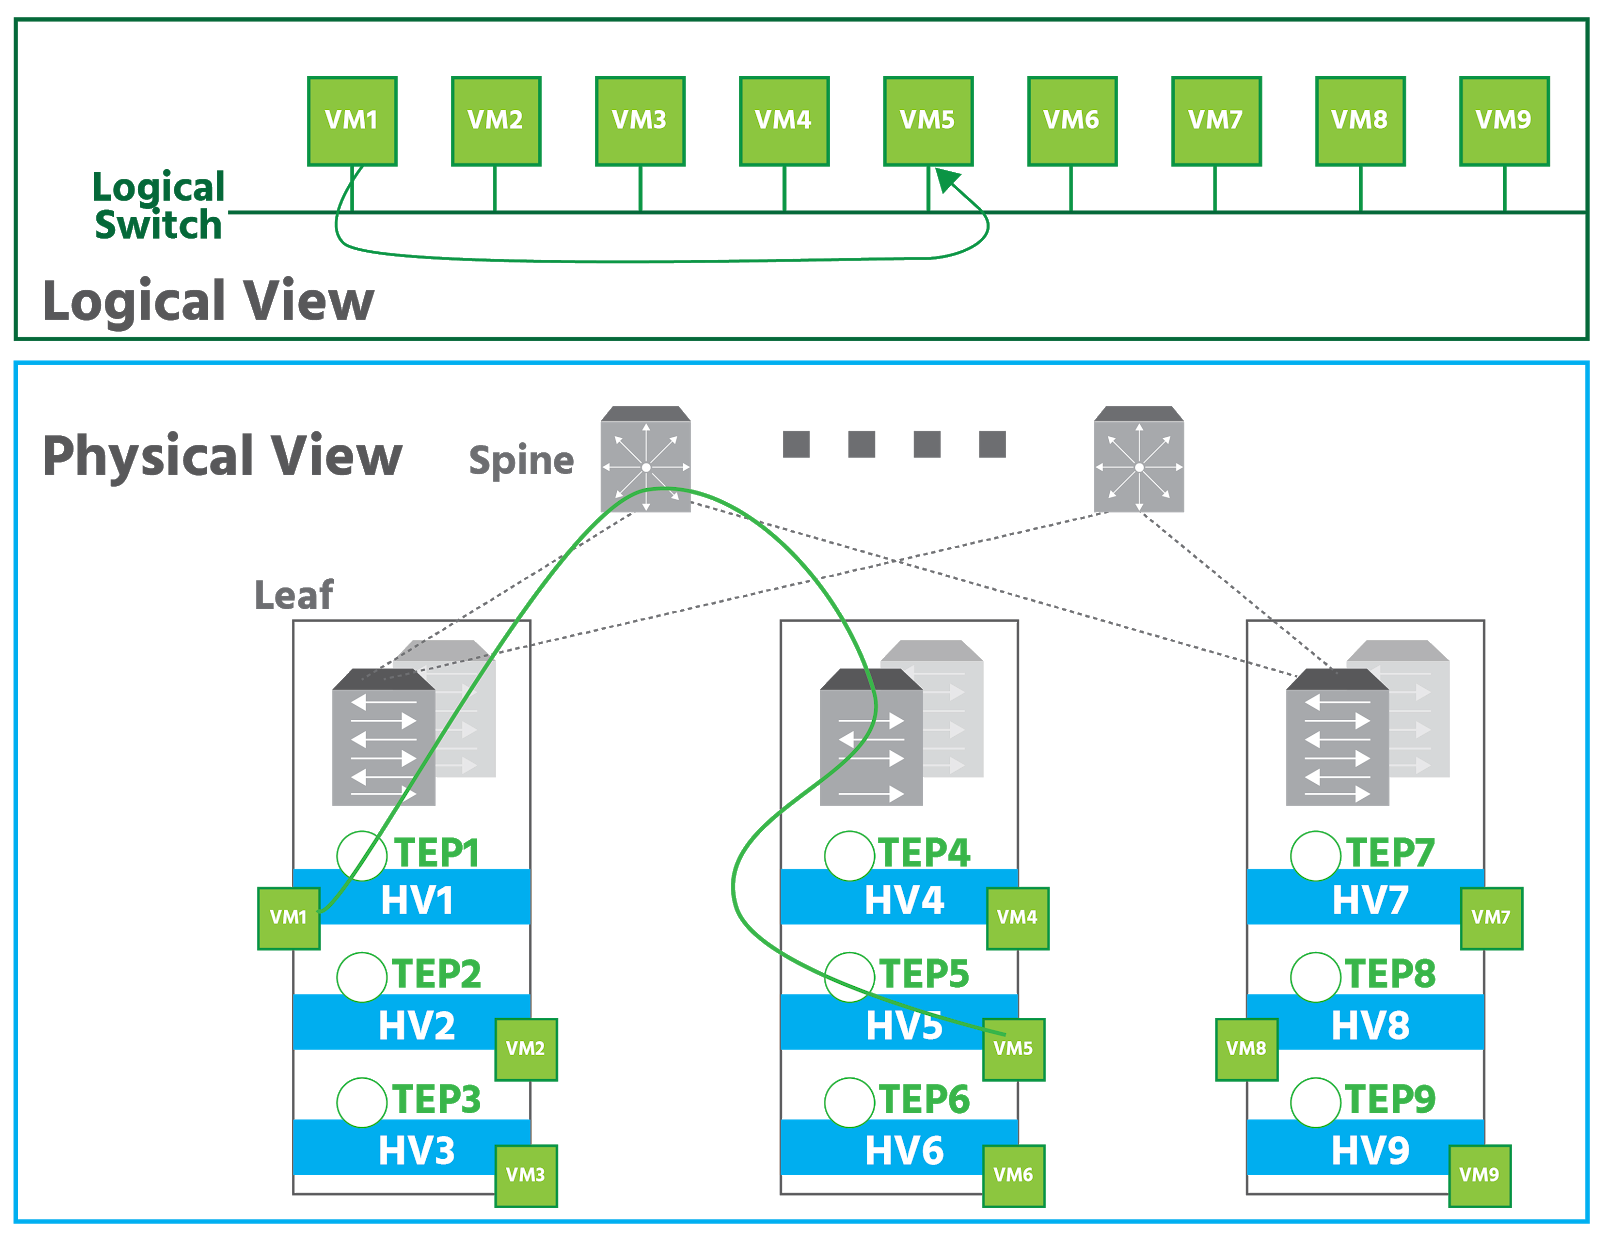 In the logical view of nine VMs on a logical switch, VM1 is connected to VM5. In the physical view, two switches are each connected to three stacks. All three stacks contain two routers above three transport nodes. Each transport node has a TEP and a VM. In stack 1, VM1 is in transport node 1 which has TEP1. In stack 2, VM5 is in transport node 5 which has TEP5. Data from VM1 goes from TEP1 to a router in stack 1 to a switch to a router in stack 2 to TEP5 in transport node 5 to VM5.